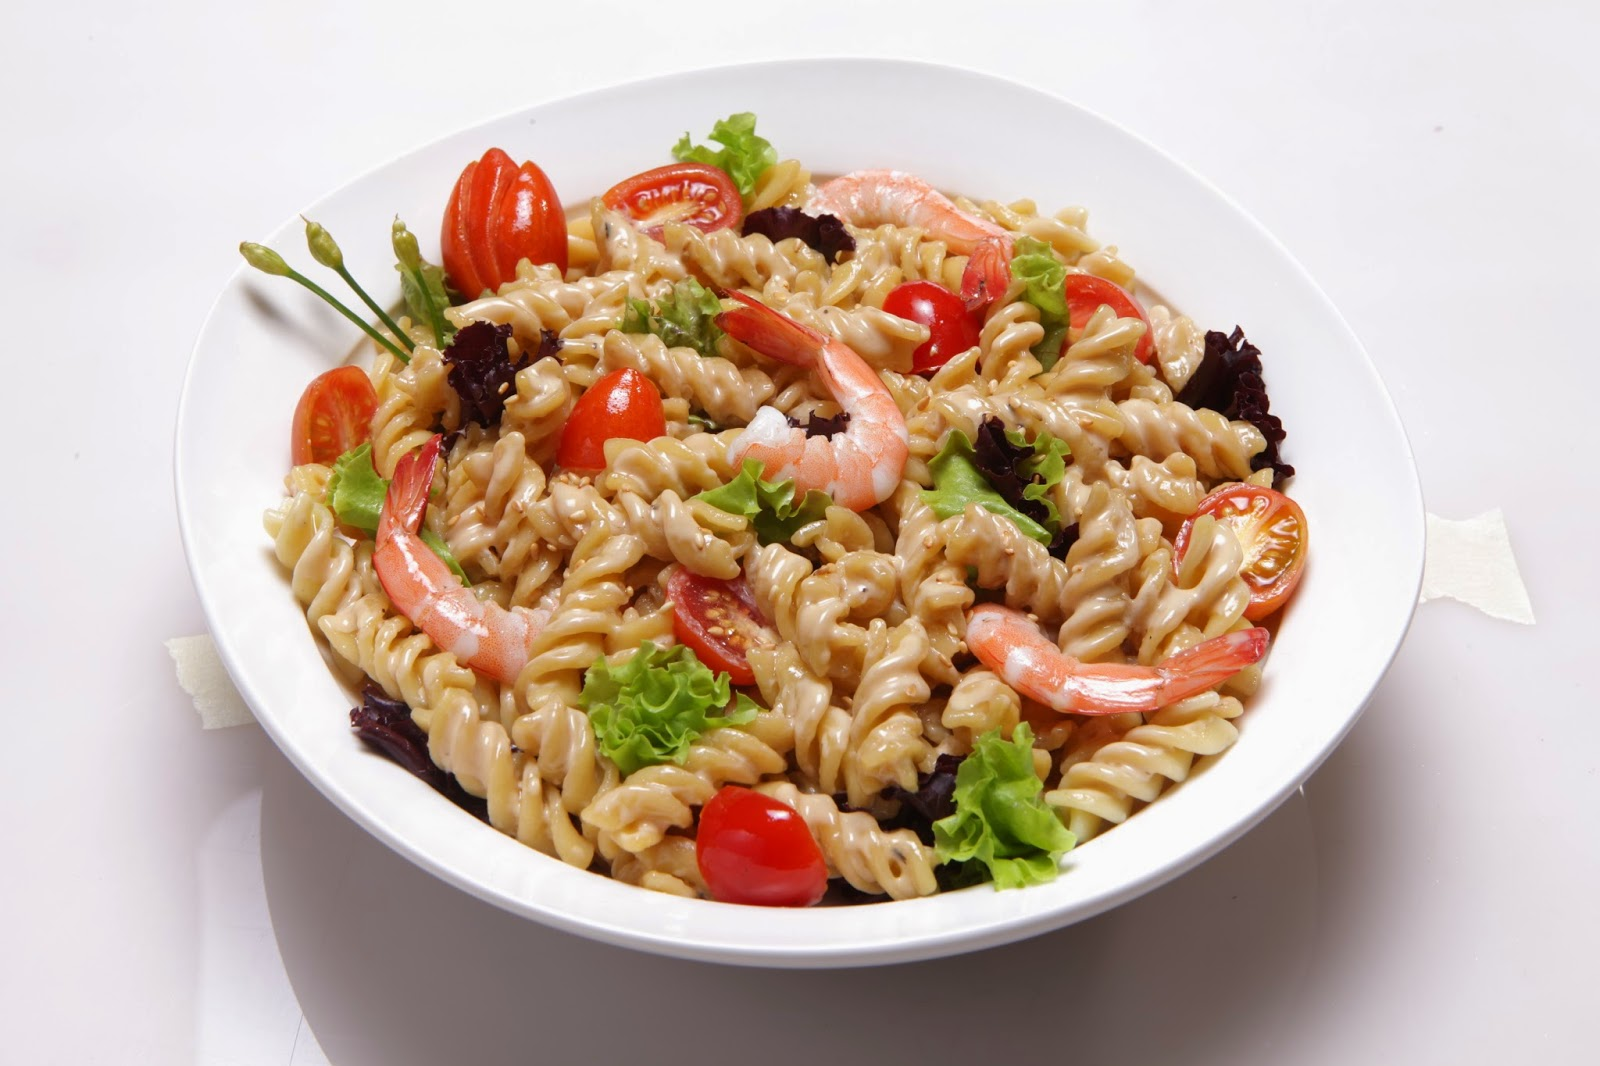 Shrimp and Pasta Salad with Creamy Sesame Dressing